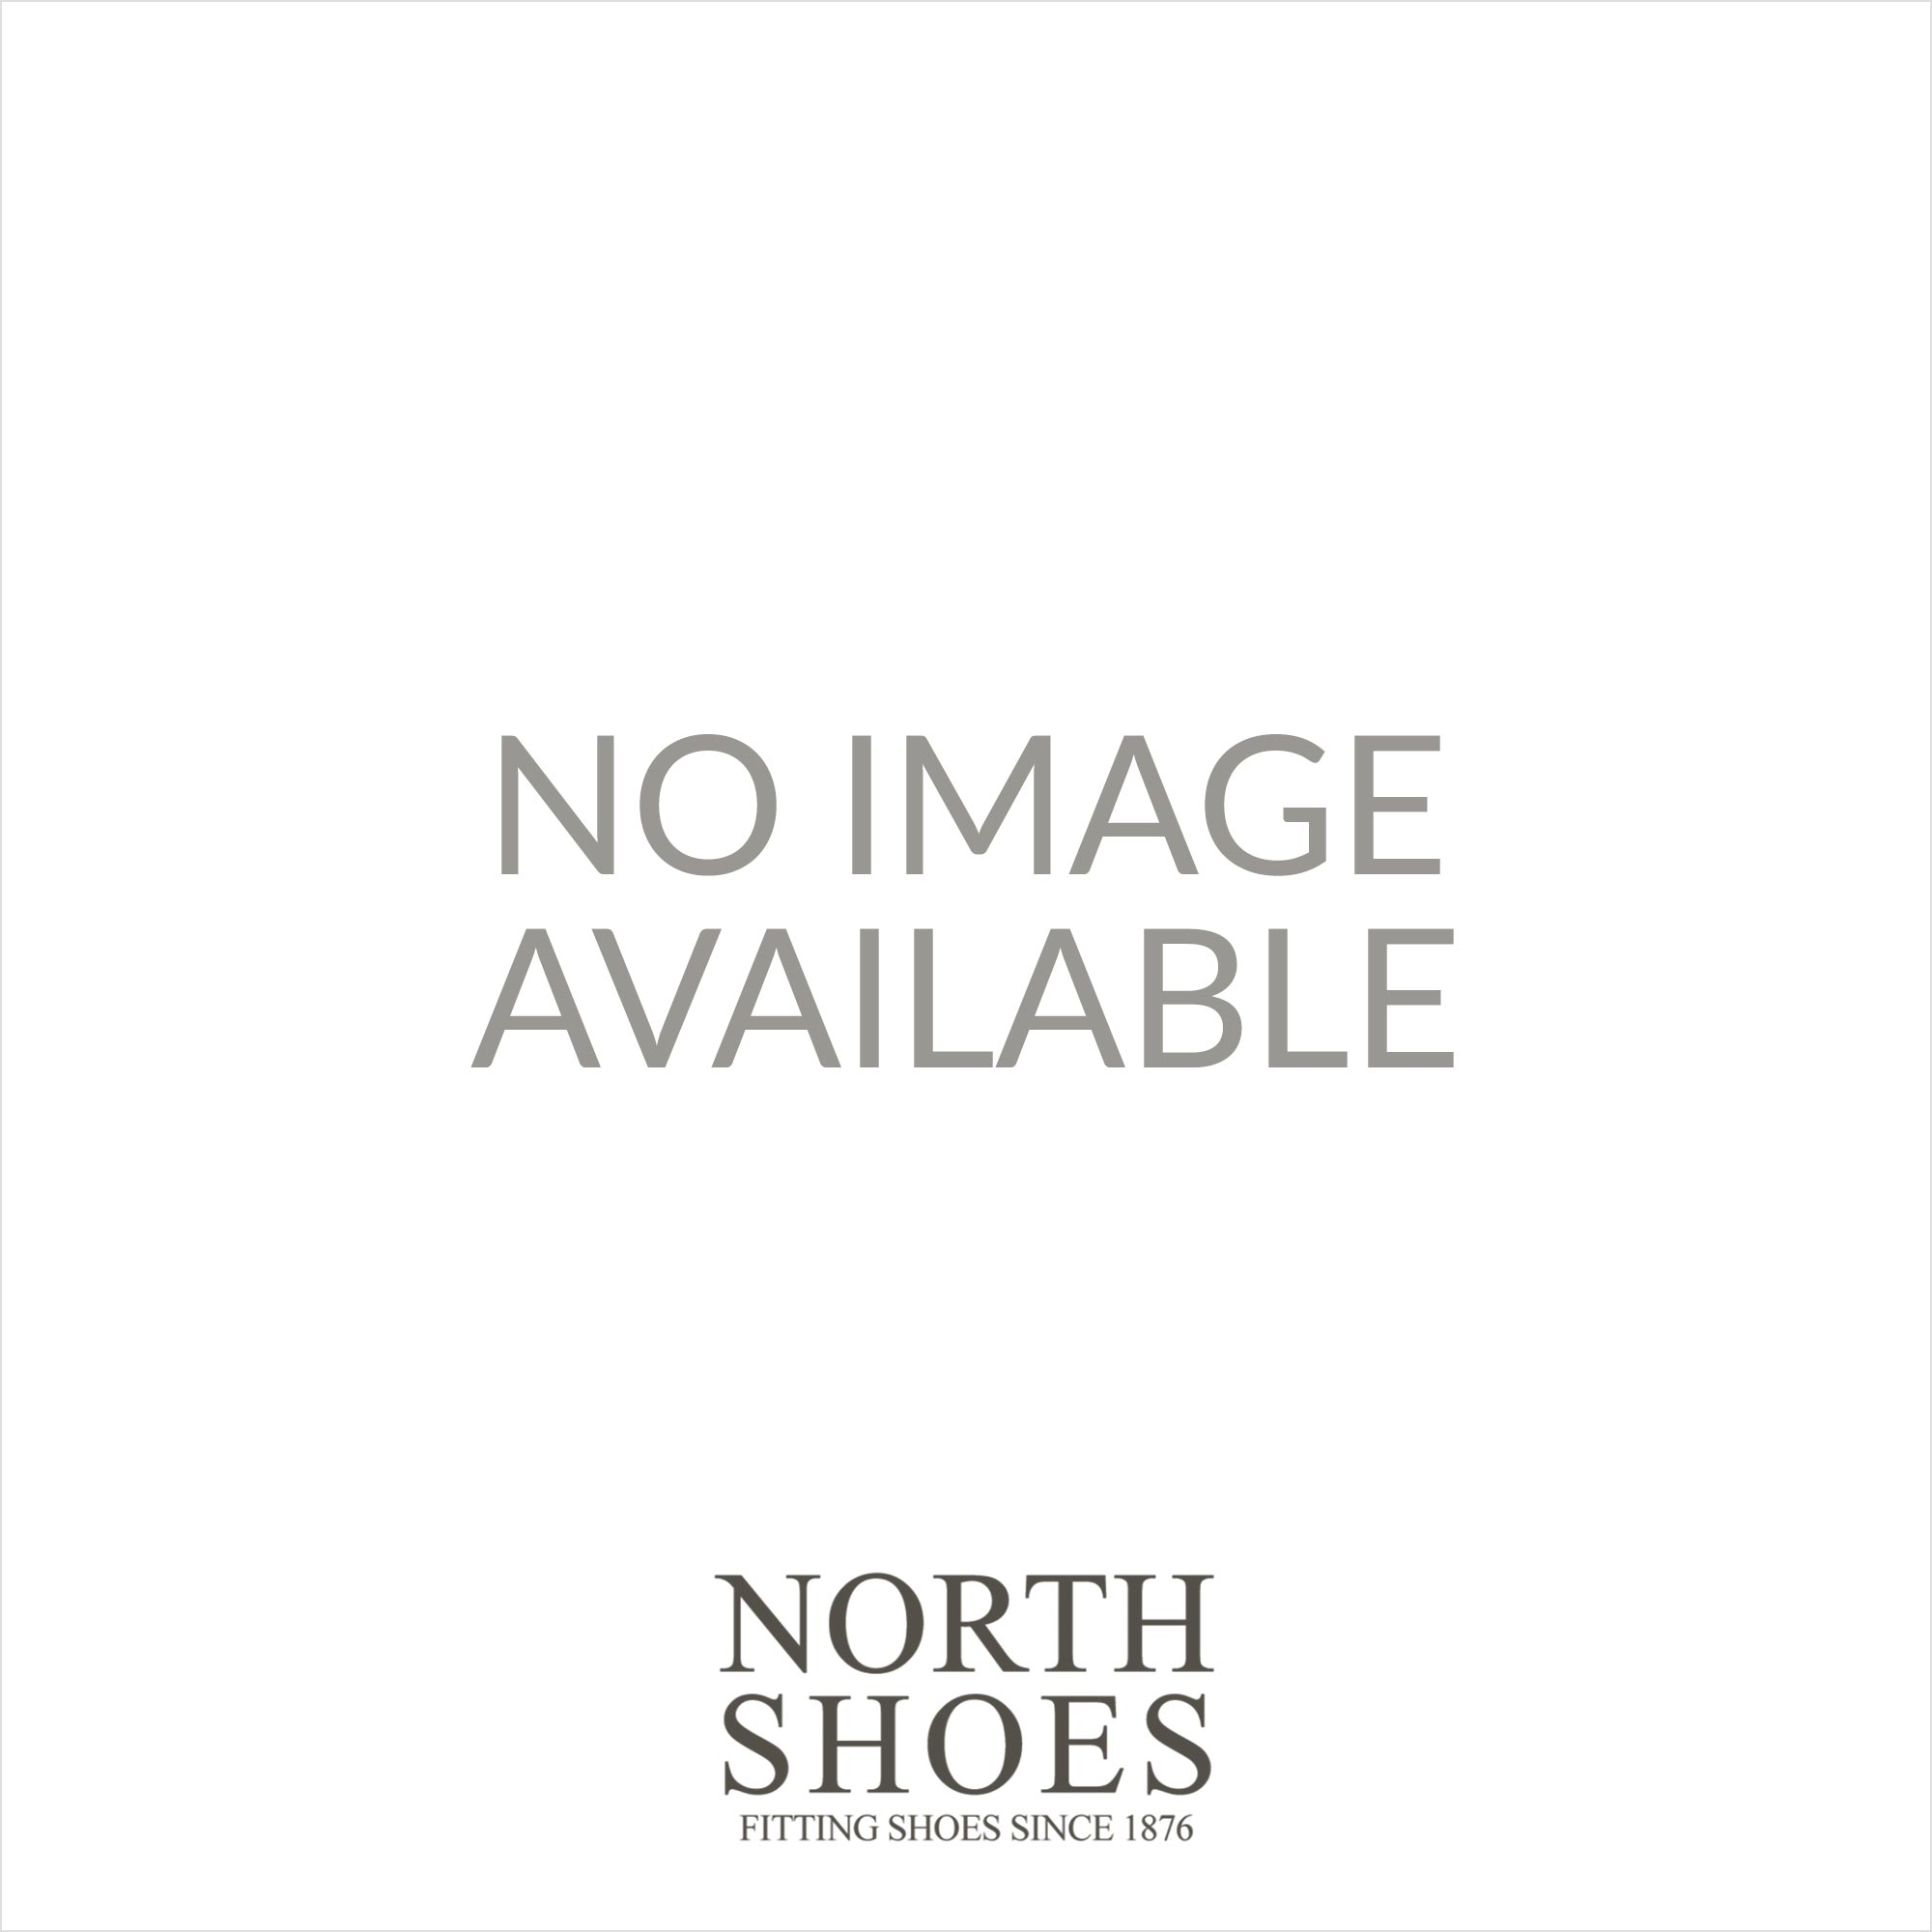 496005400007 Bronze Nubuck/Leather Womens Lace Up Casual Trainer Shoe